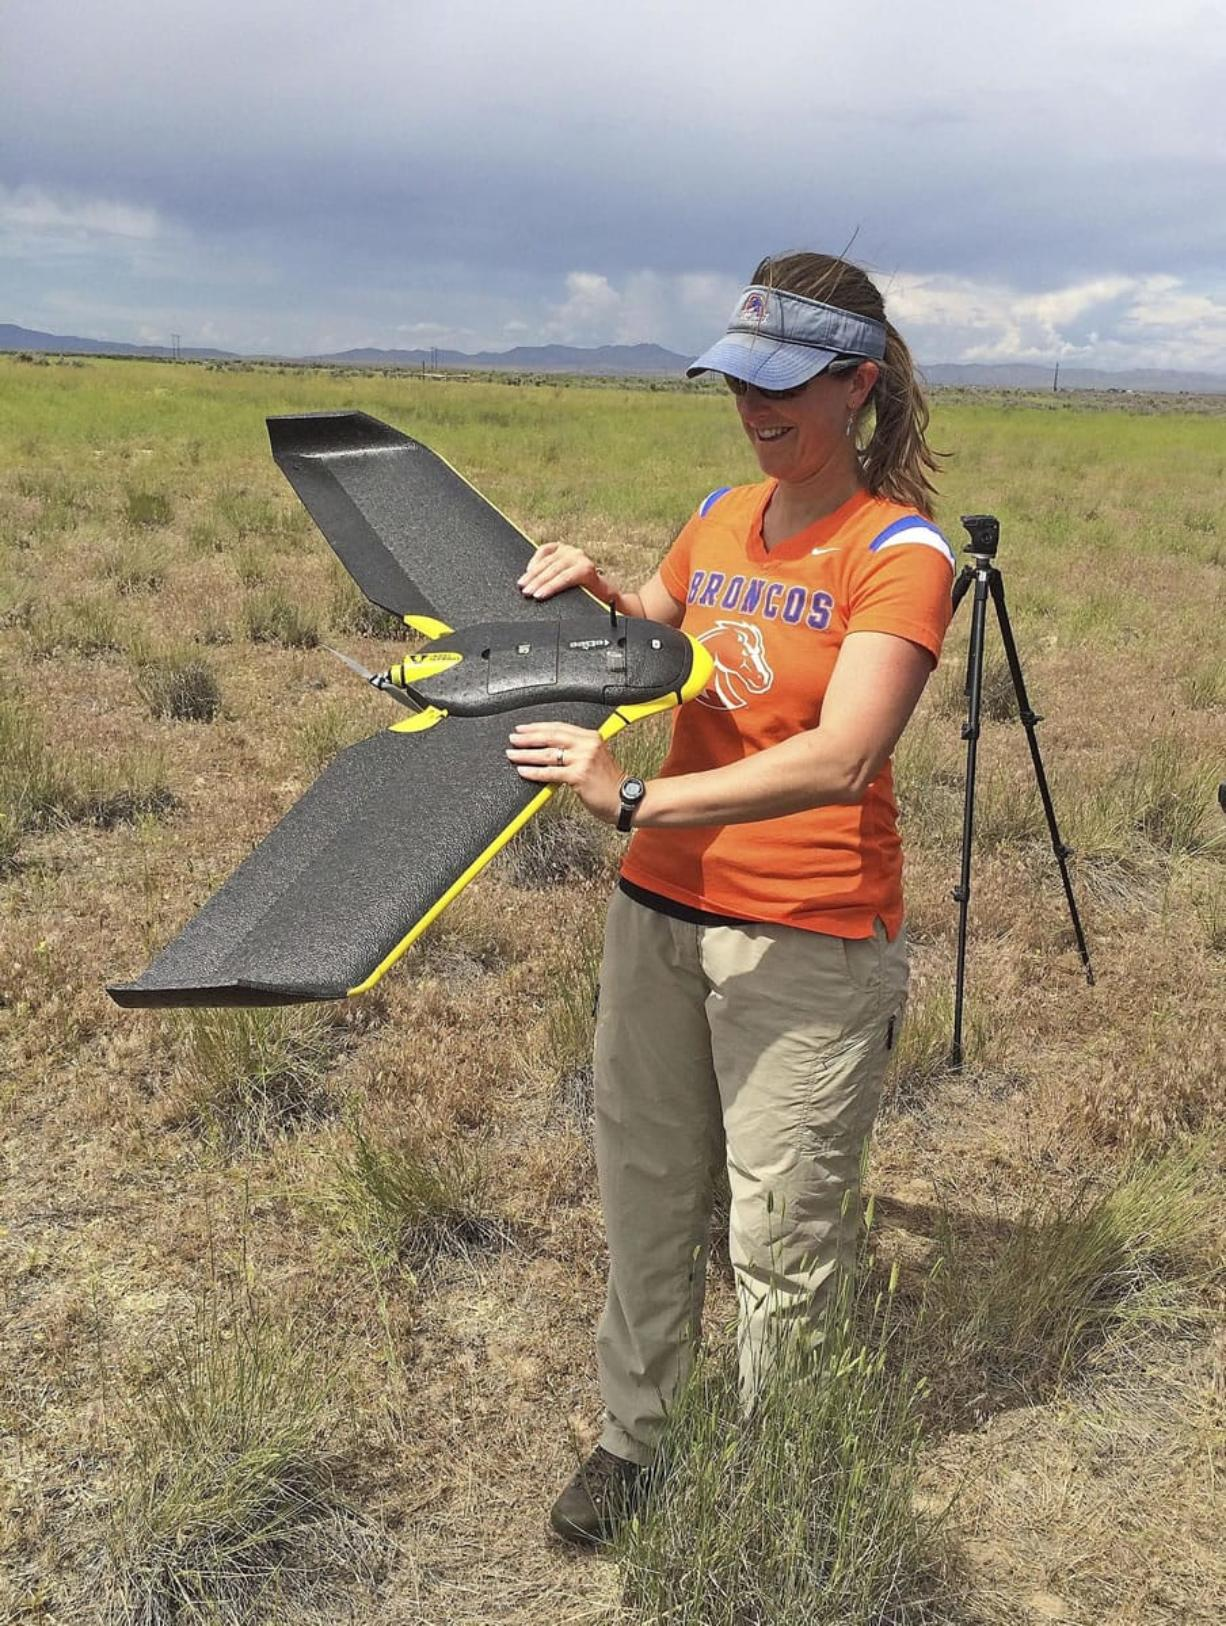 Boise State University Professor Jennifer Forbey examines a drone prior to launch June 10 in an area west of Boise, Idaho.